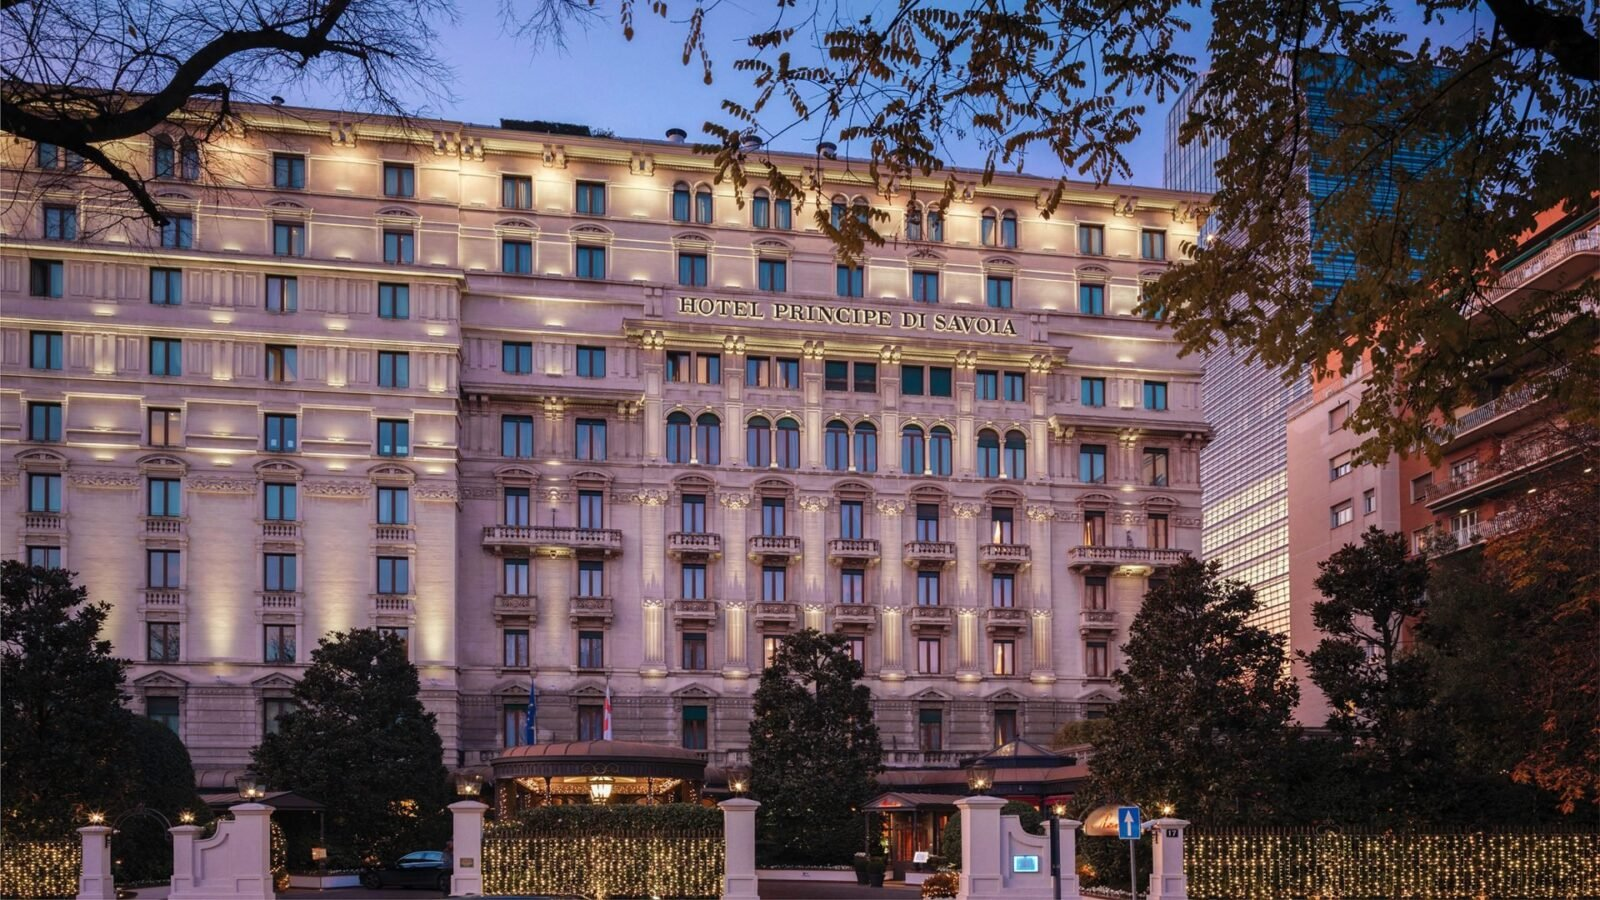 Hotel Principe di Savoia, Milan -Plan in Advance